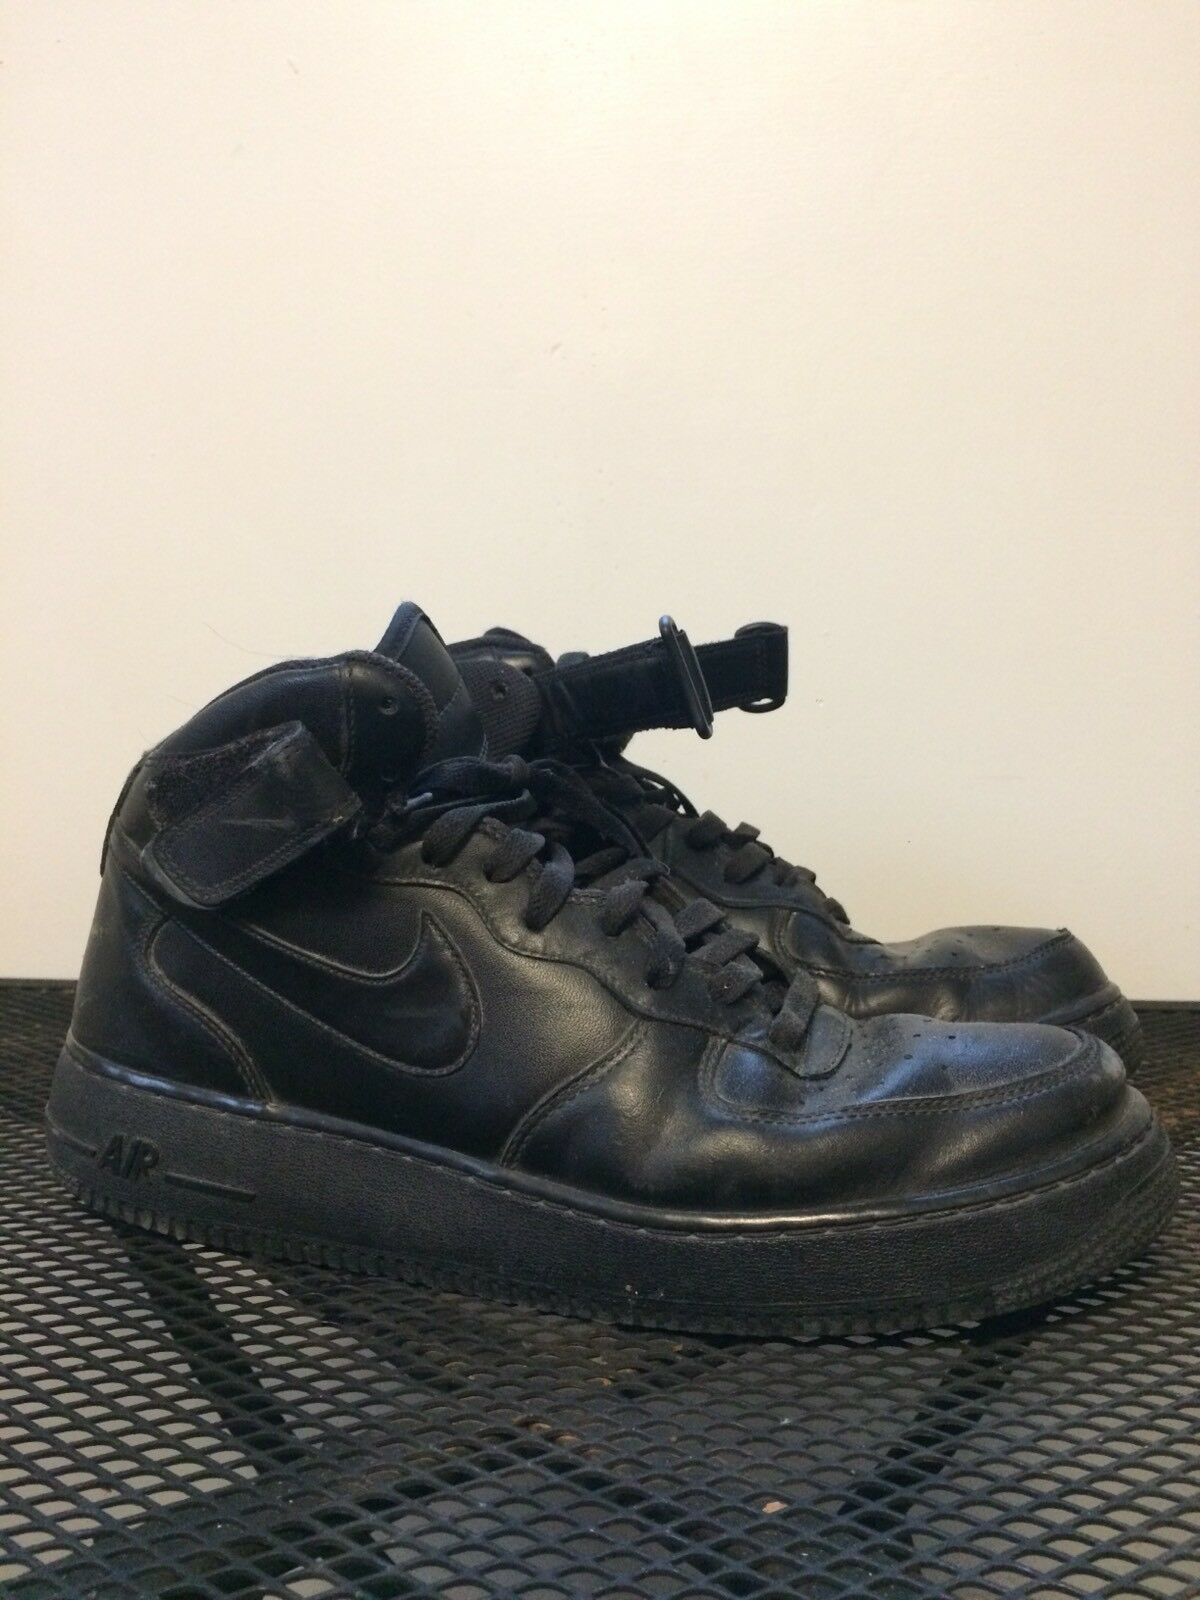 NIKE AIR FORCE ONES MENS SIZE 12 Casual wild